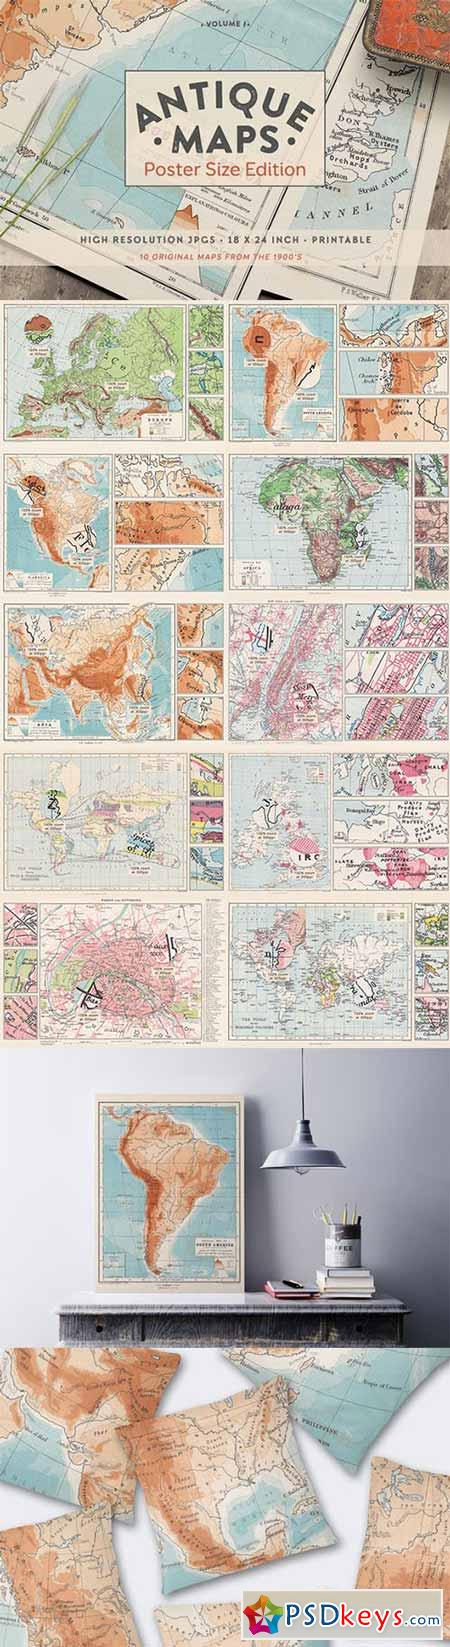 Antique Maps - Poster Size Edition 514292